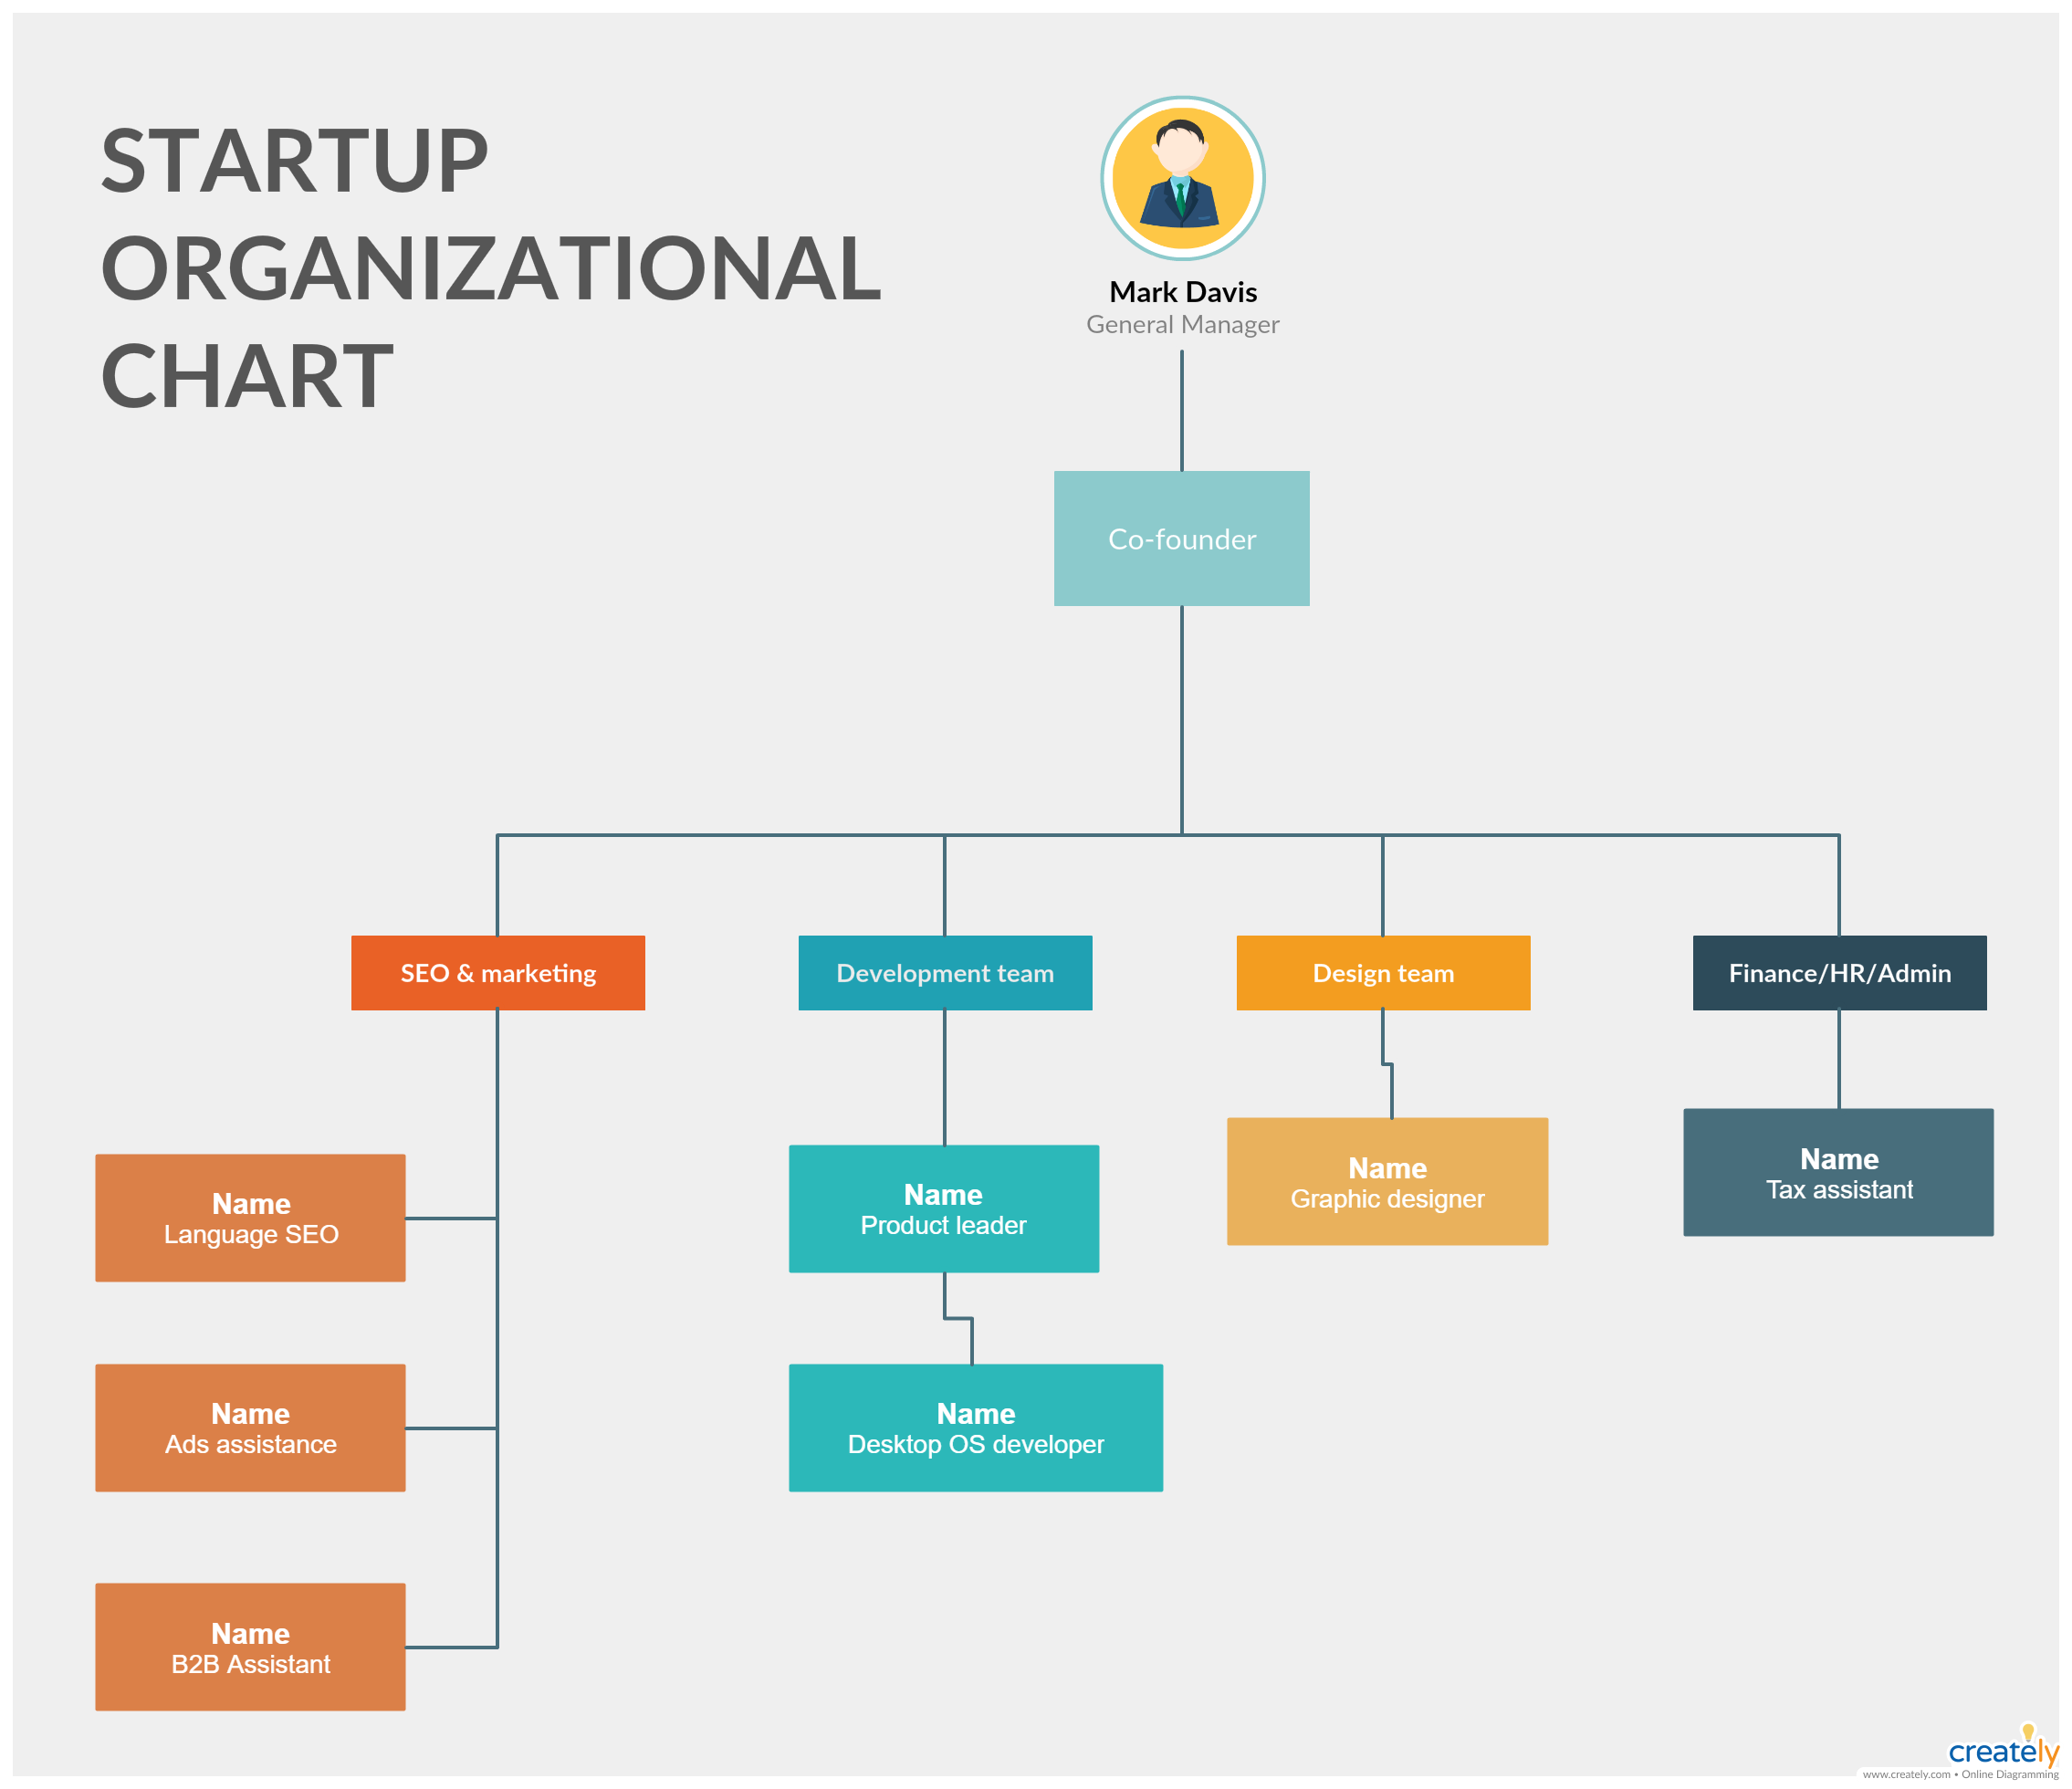 Startup organizational chart template editable org for it company useful software technology companies and tech startups also rh pinterest